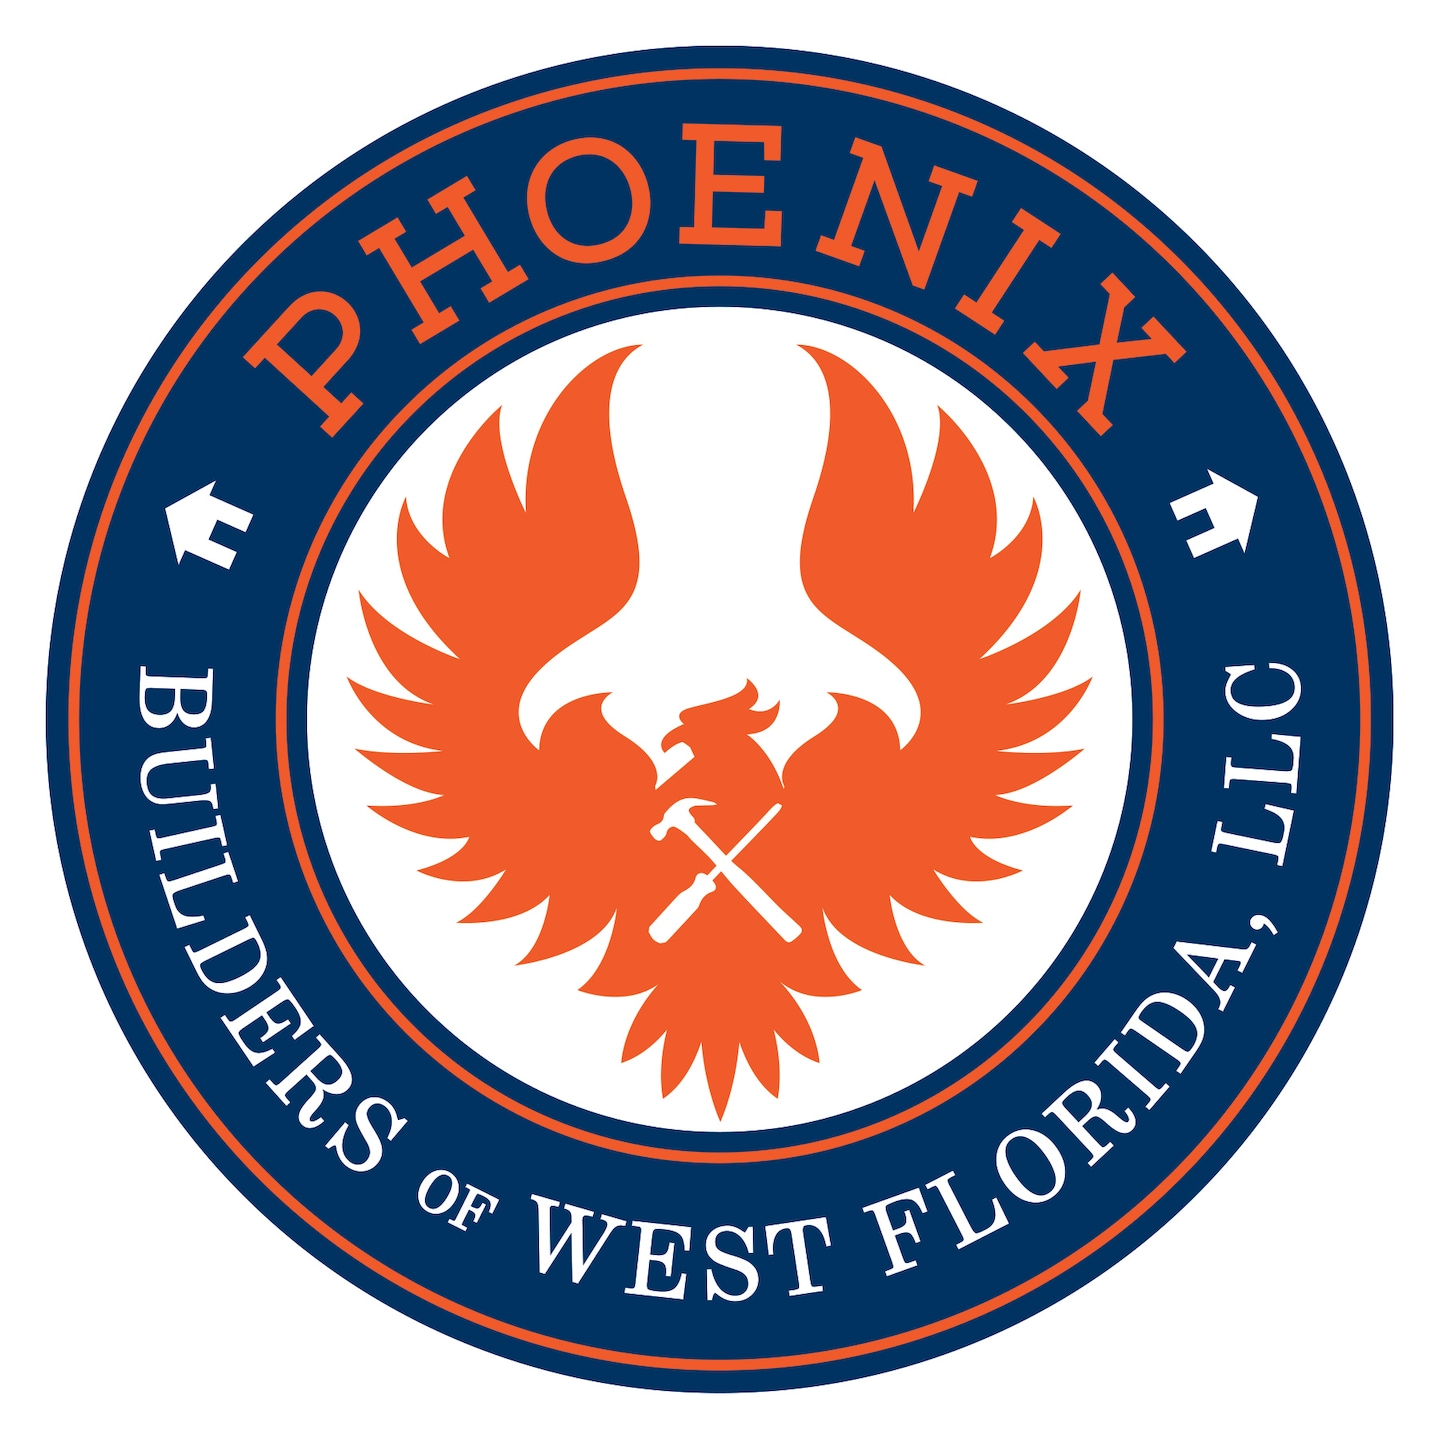 Phoenix Builders of West Florida LLC